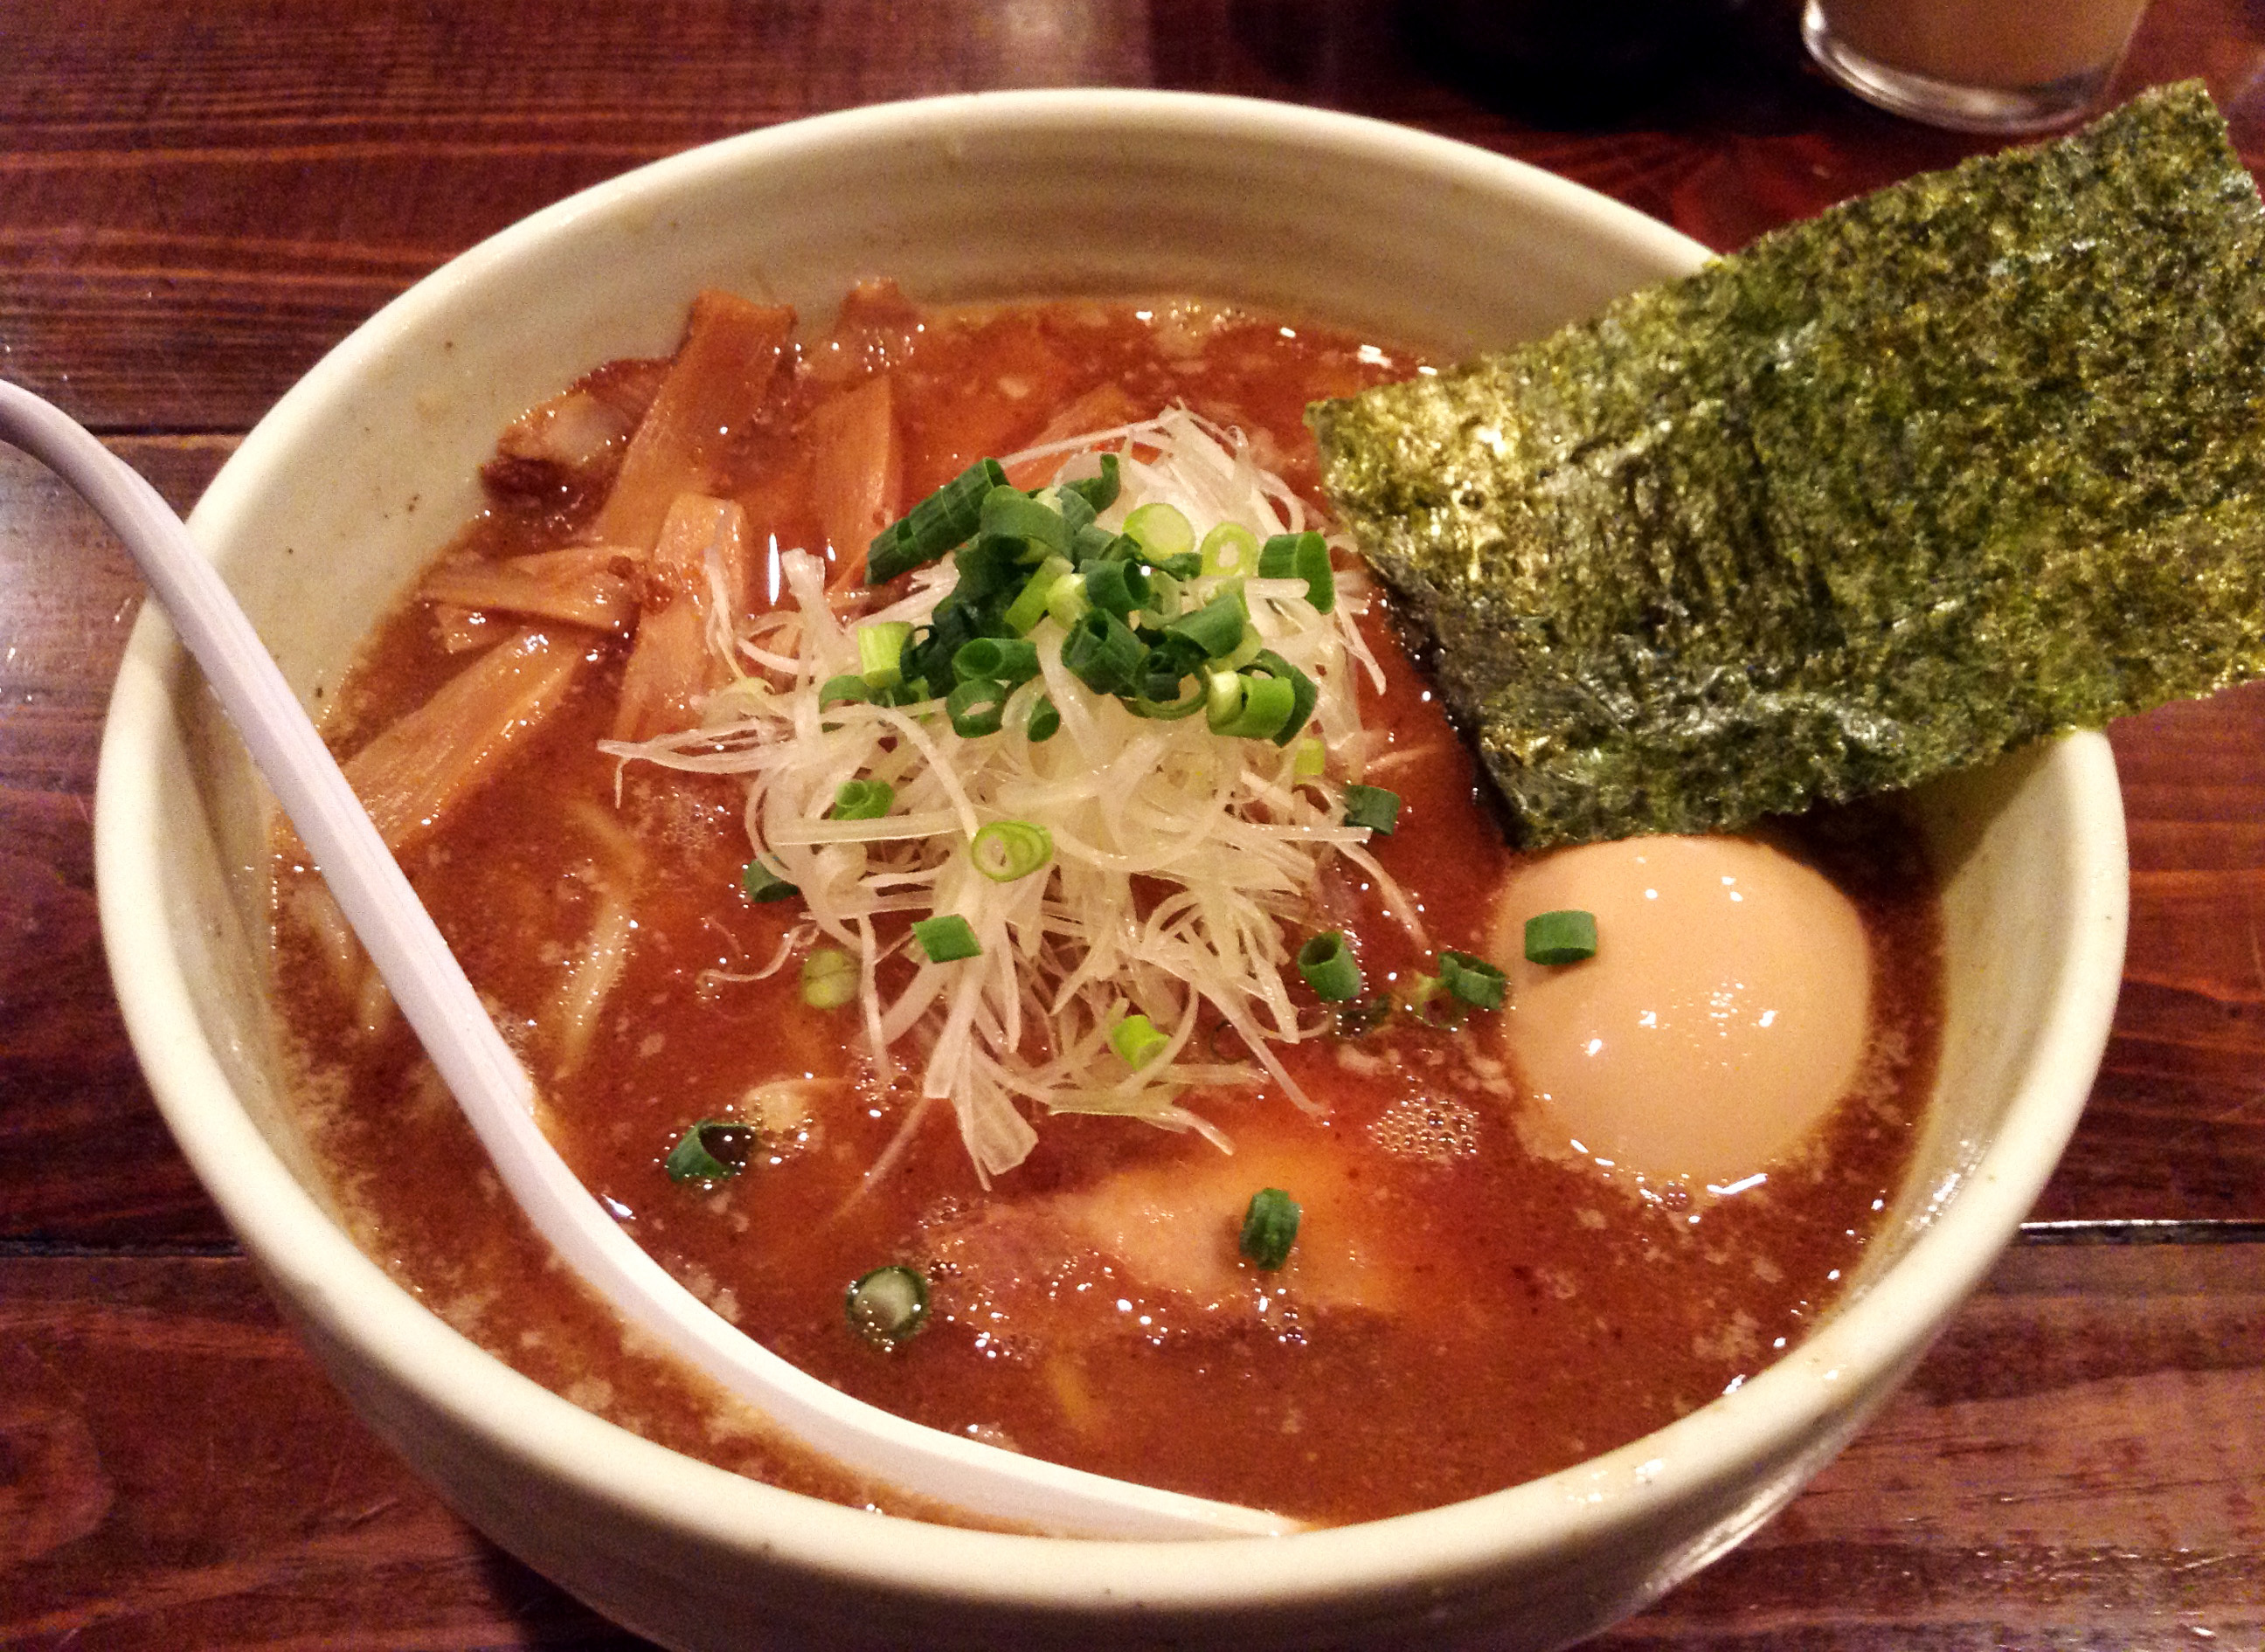 Taste additive-free ramen at Zoot